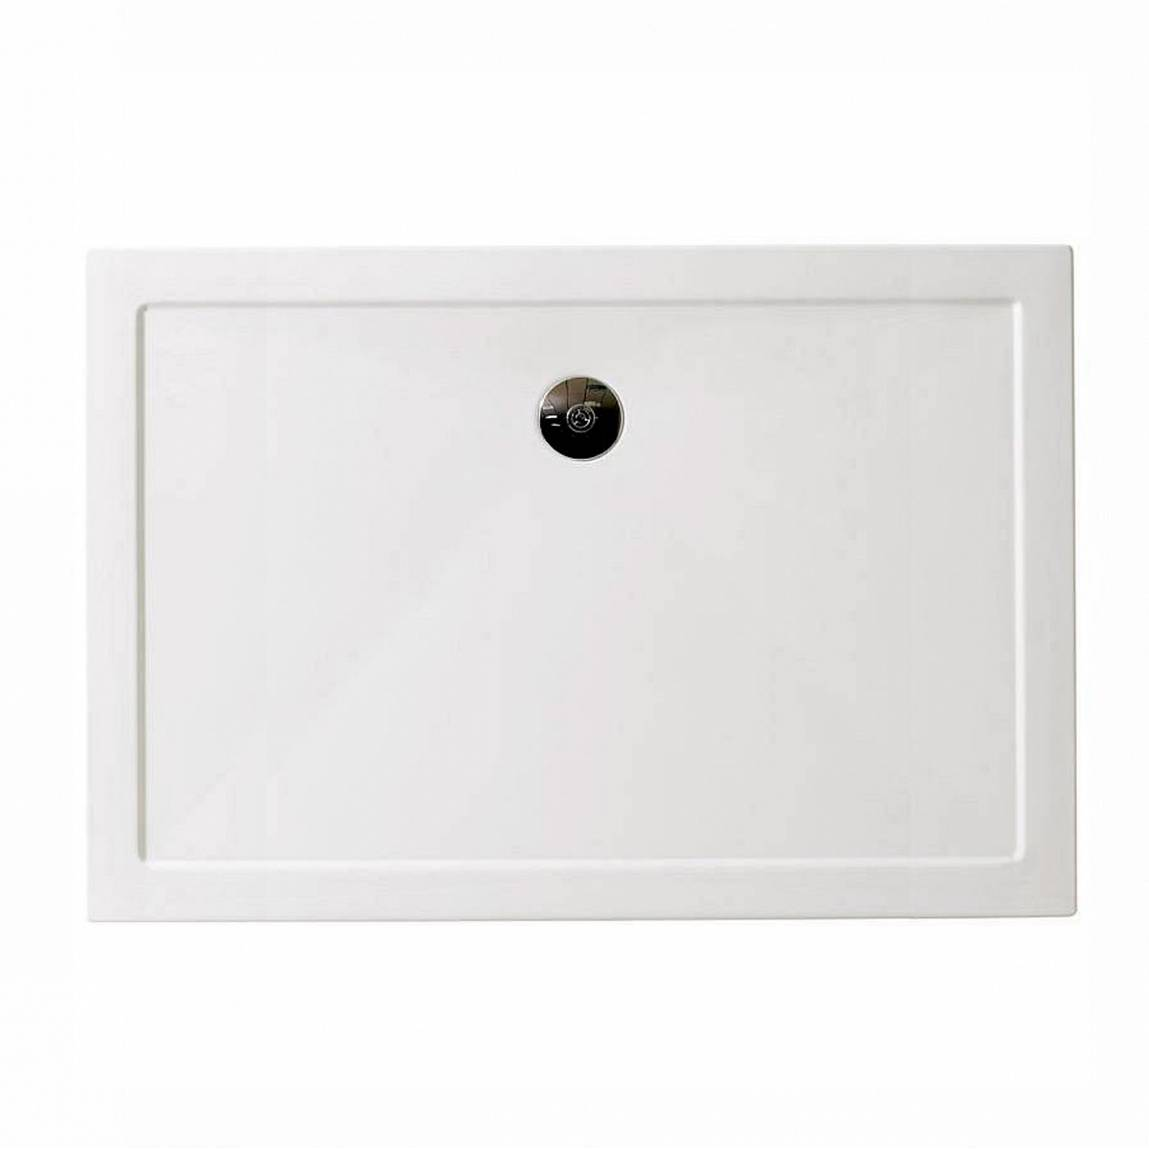 Shower Tray 700 x 1100 Shower Tray 1100 x 760